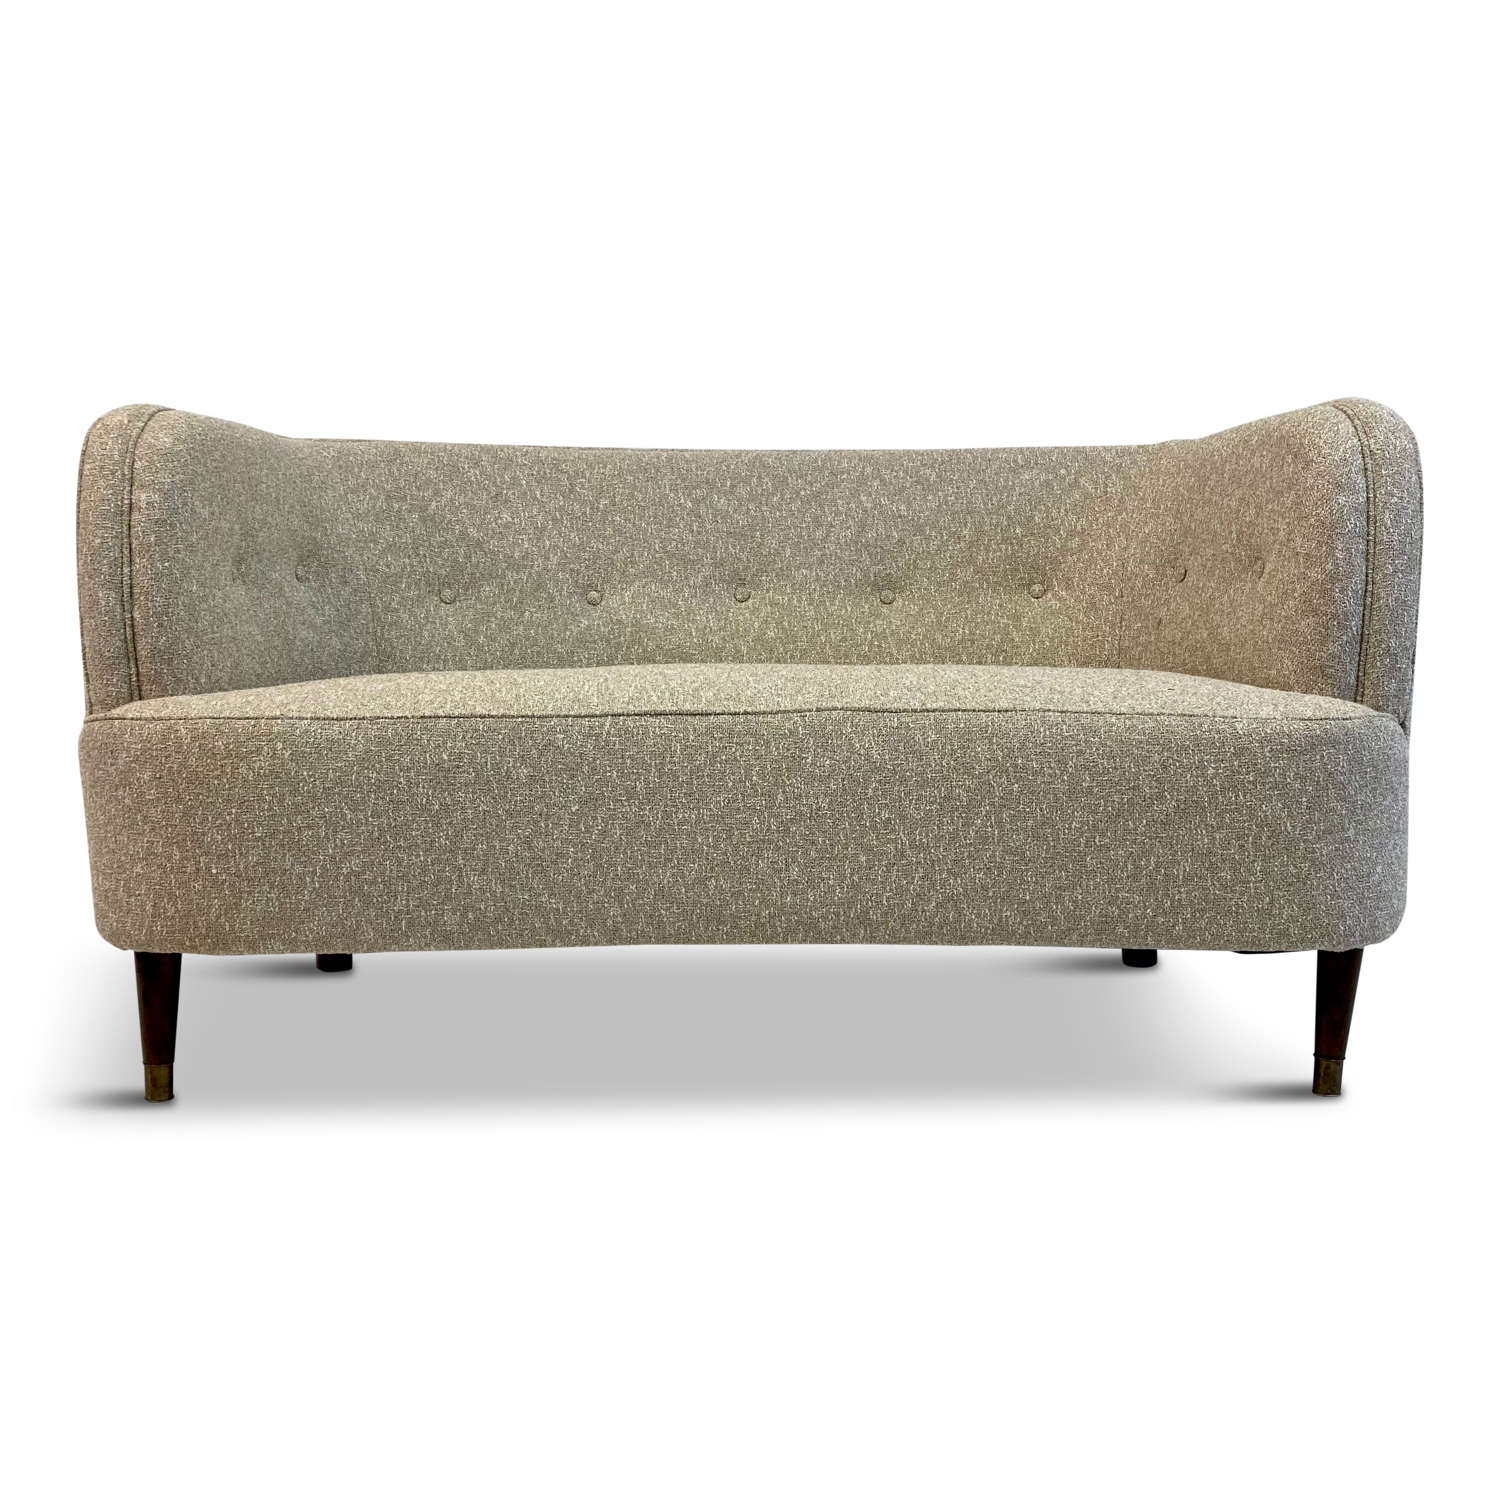 Small Curved 1940s Danish Two Seater Sofa in Lelièvre Fabric